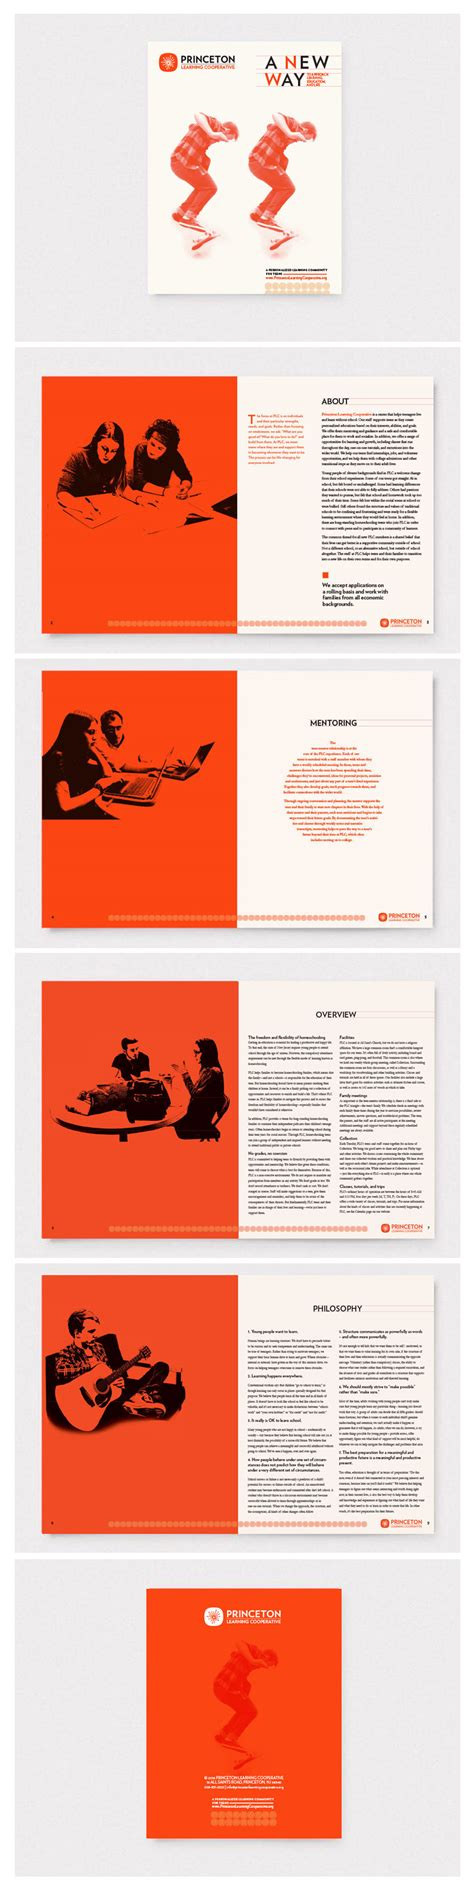 graphic design page layout software ad agency new jersey education branding momentum 18